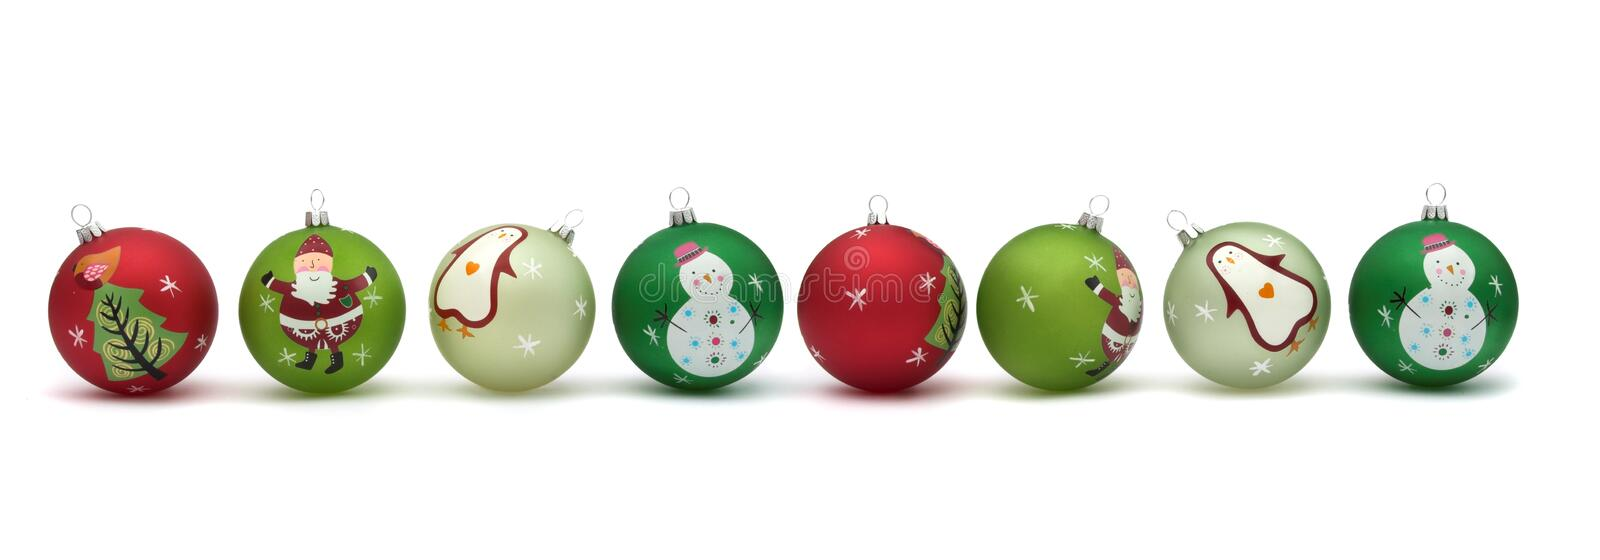 Pretty Christmas baubles royalty free stock photography